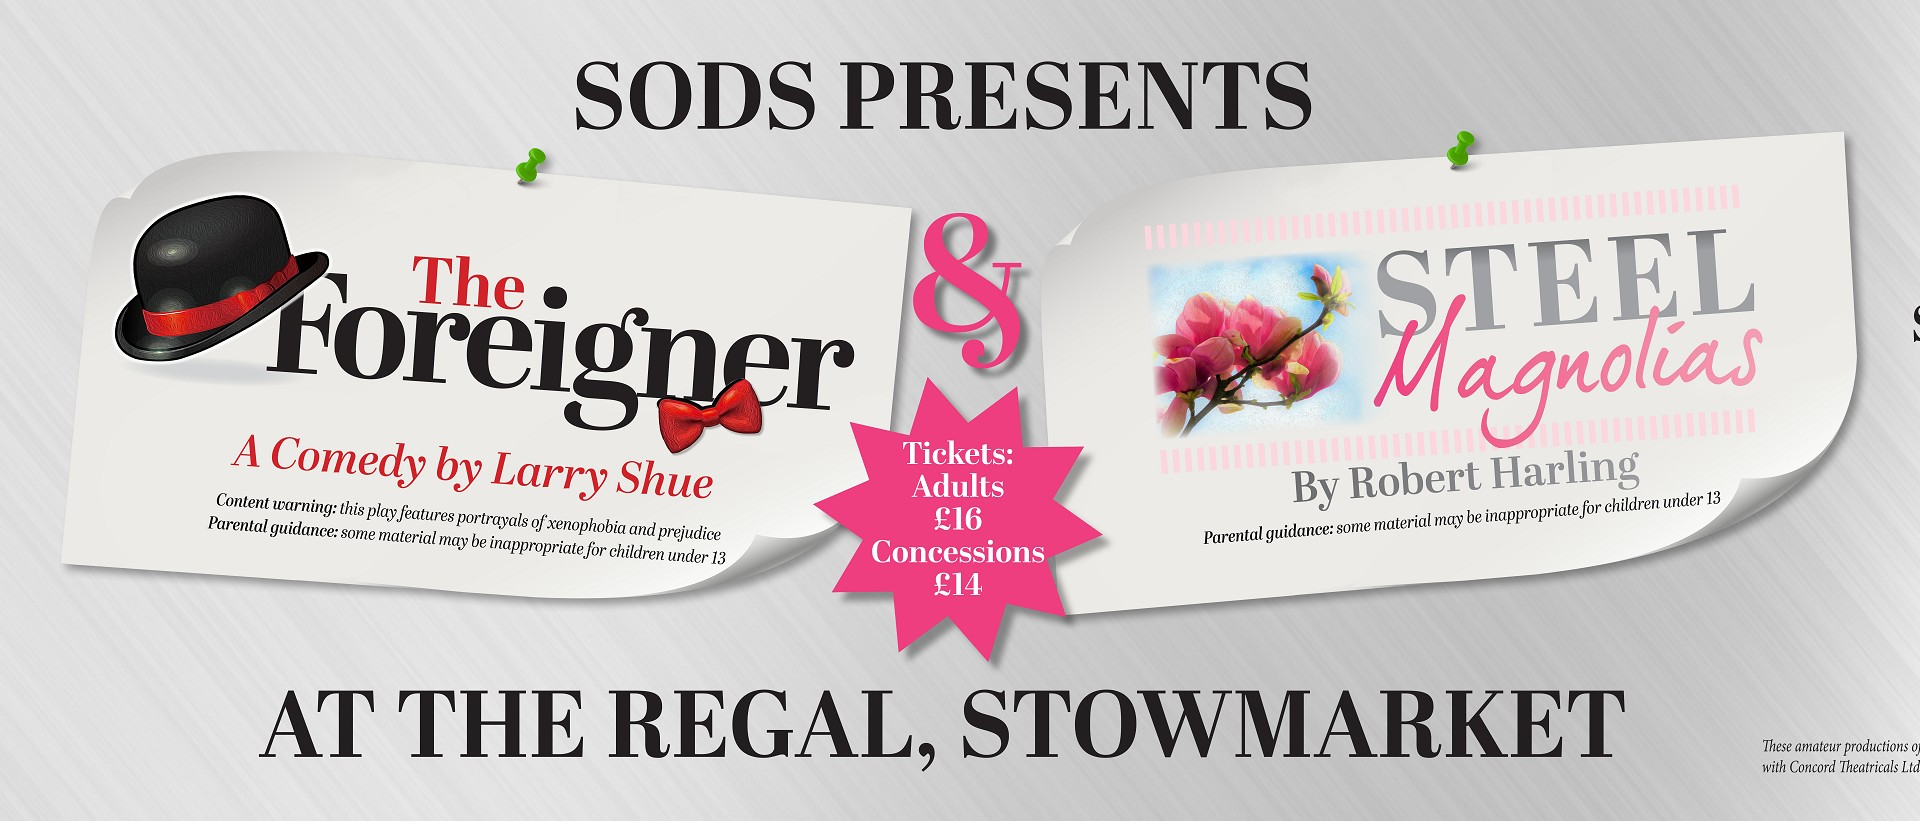 SODS Presents: The Foreigner